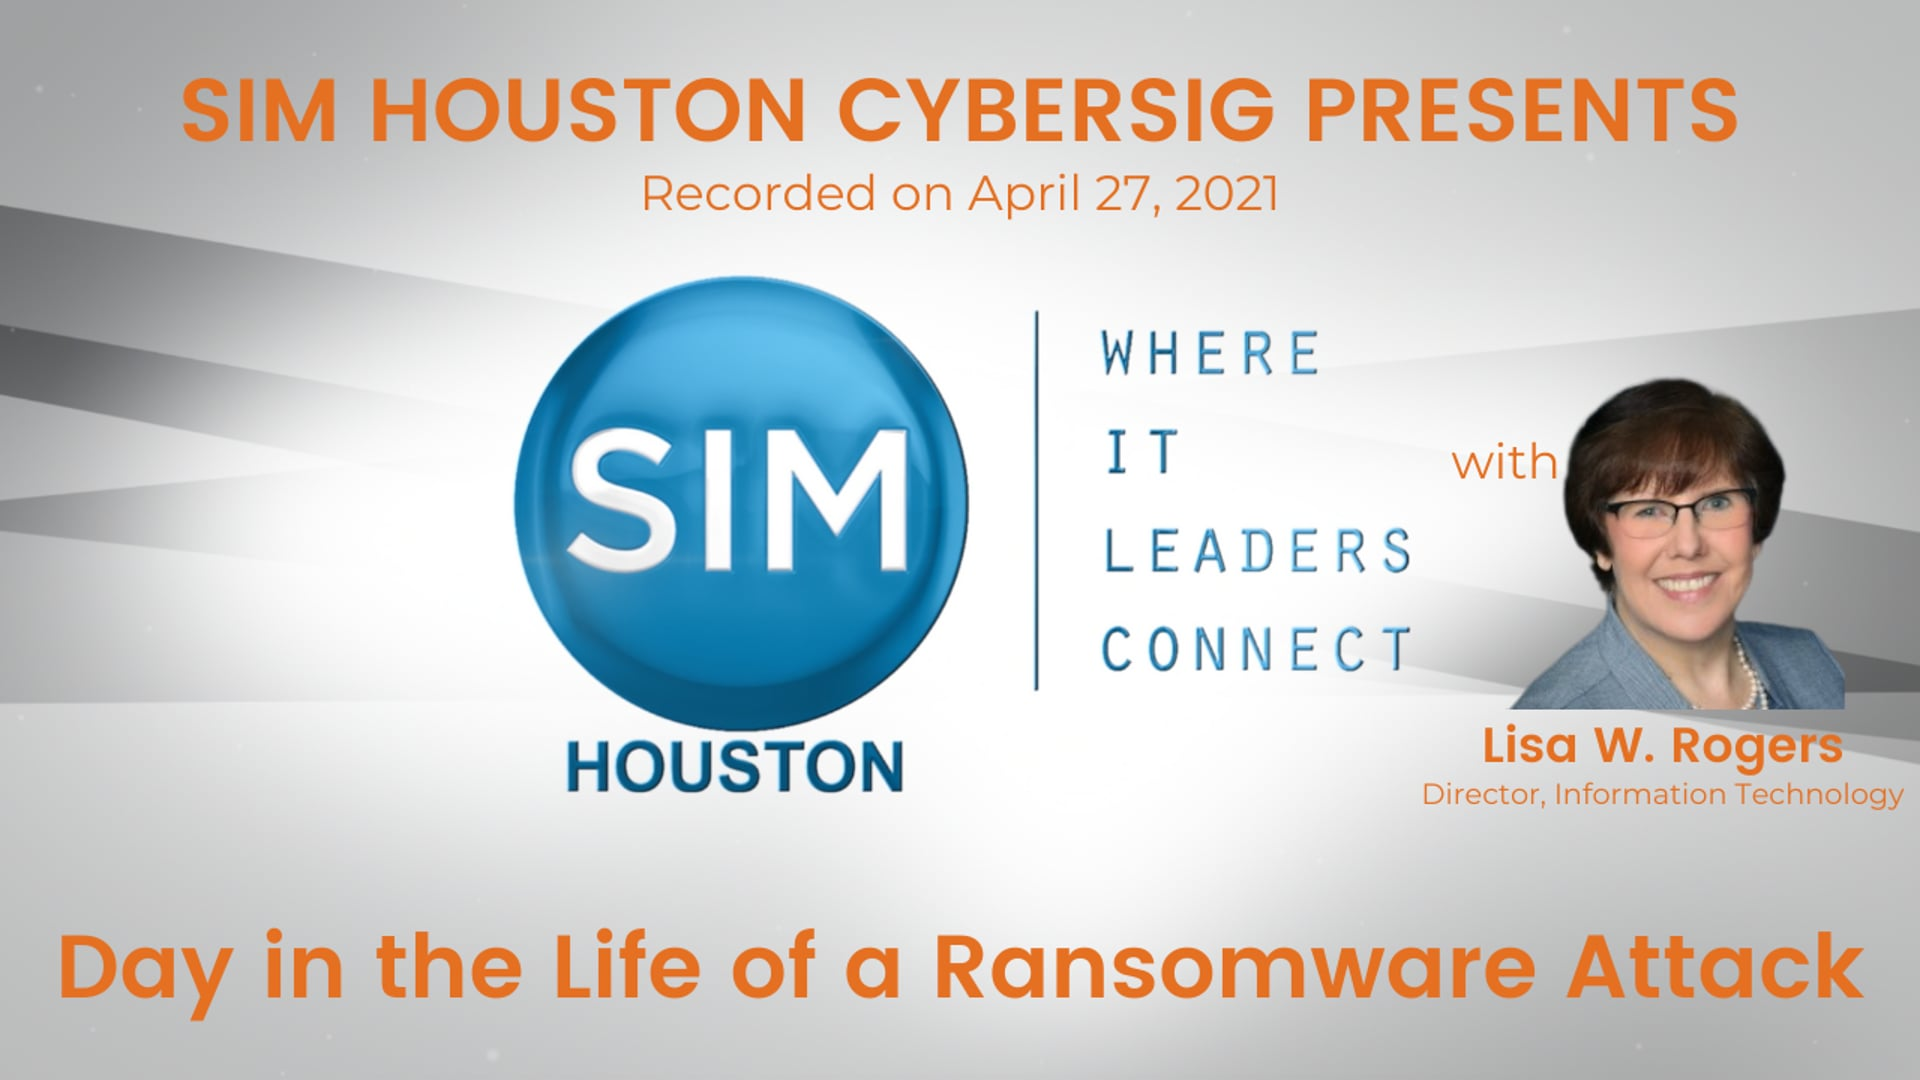 SIM Houston Cyber SIG Presents: A Day in the Life of a Ransomware Attack with Lisa W. Rogers